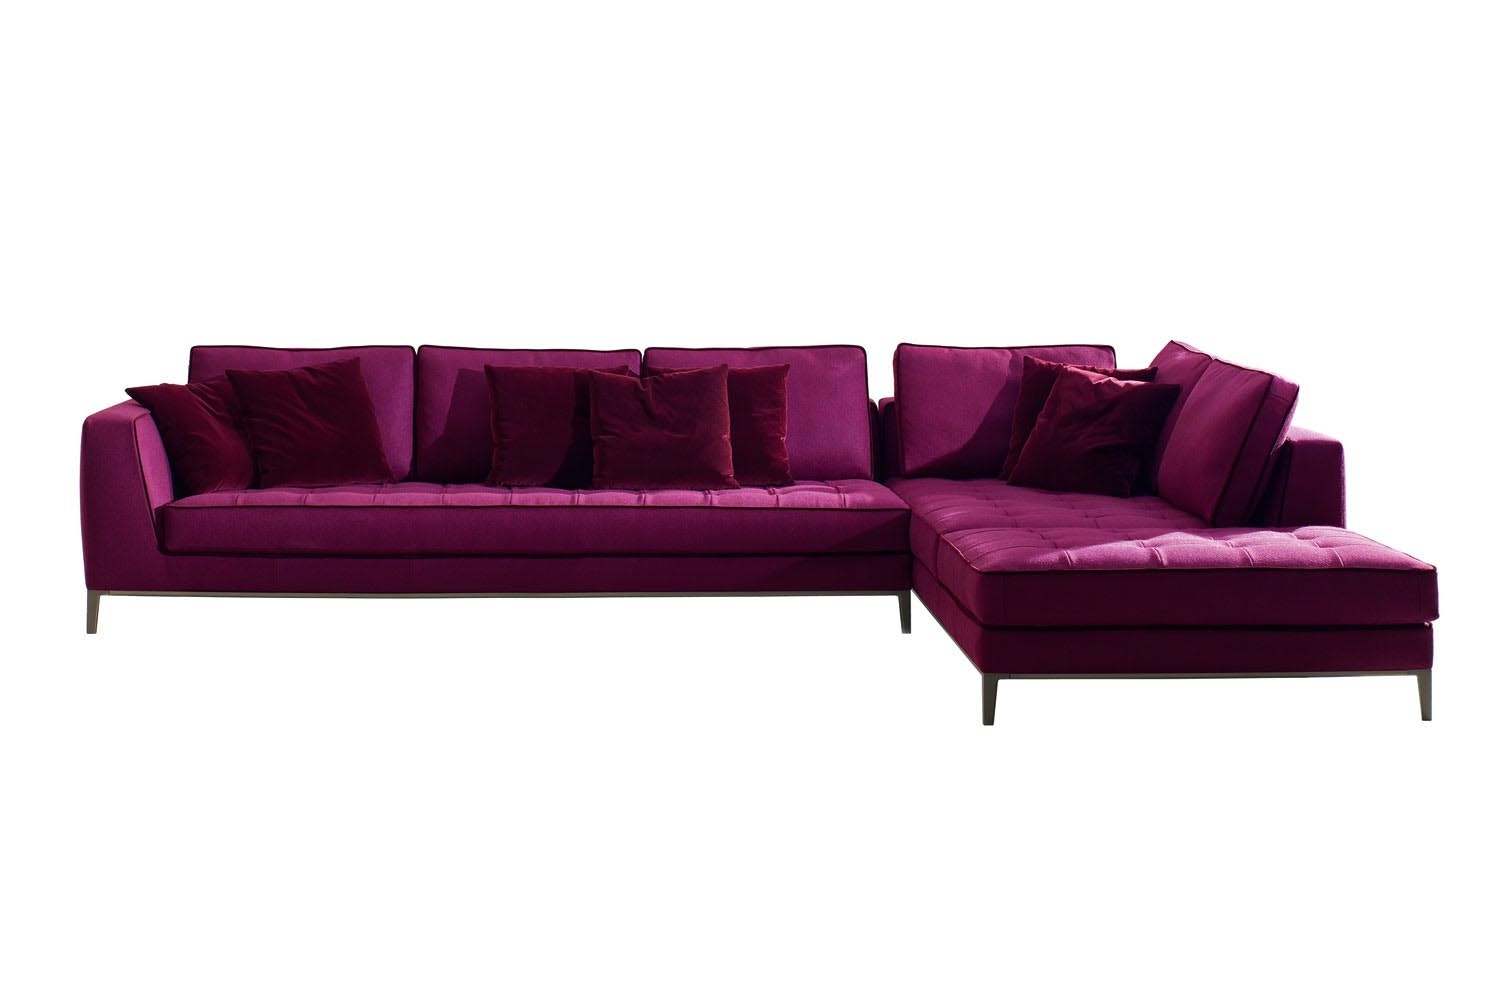 Lucrezia Sofa by Antonio Citterio for Maxalto